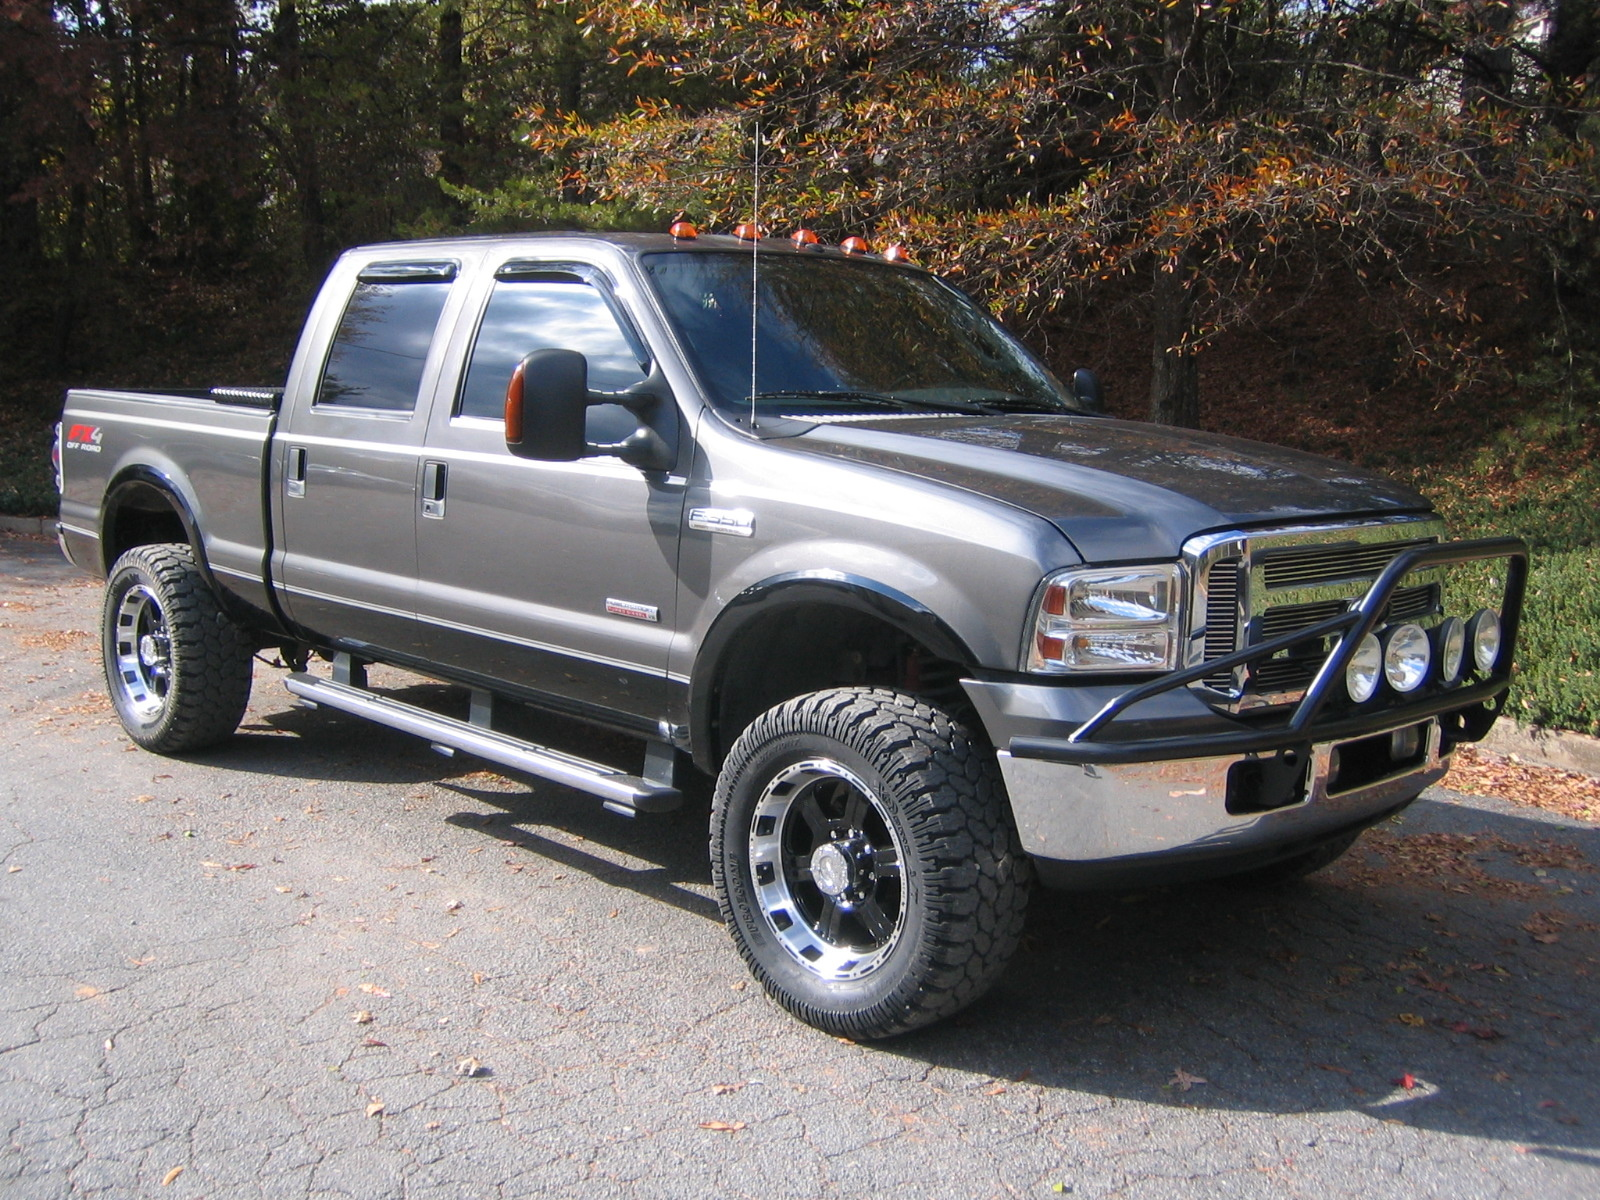 Picture of 2005 ford f 350 super duty lariat crew cab sb 4wd gallery_worthy